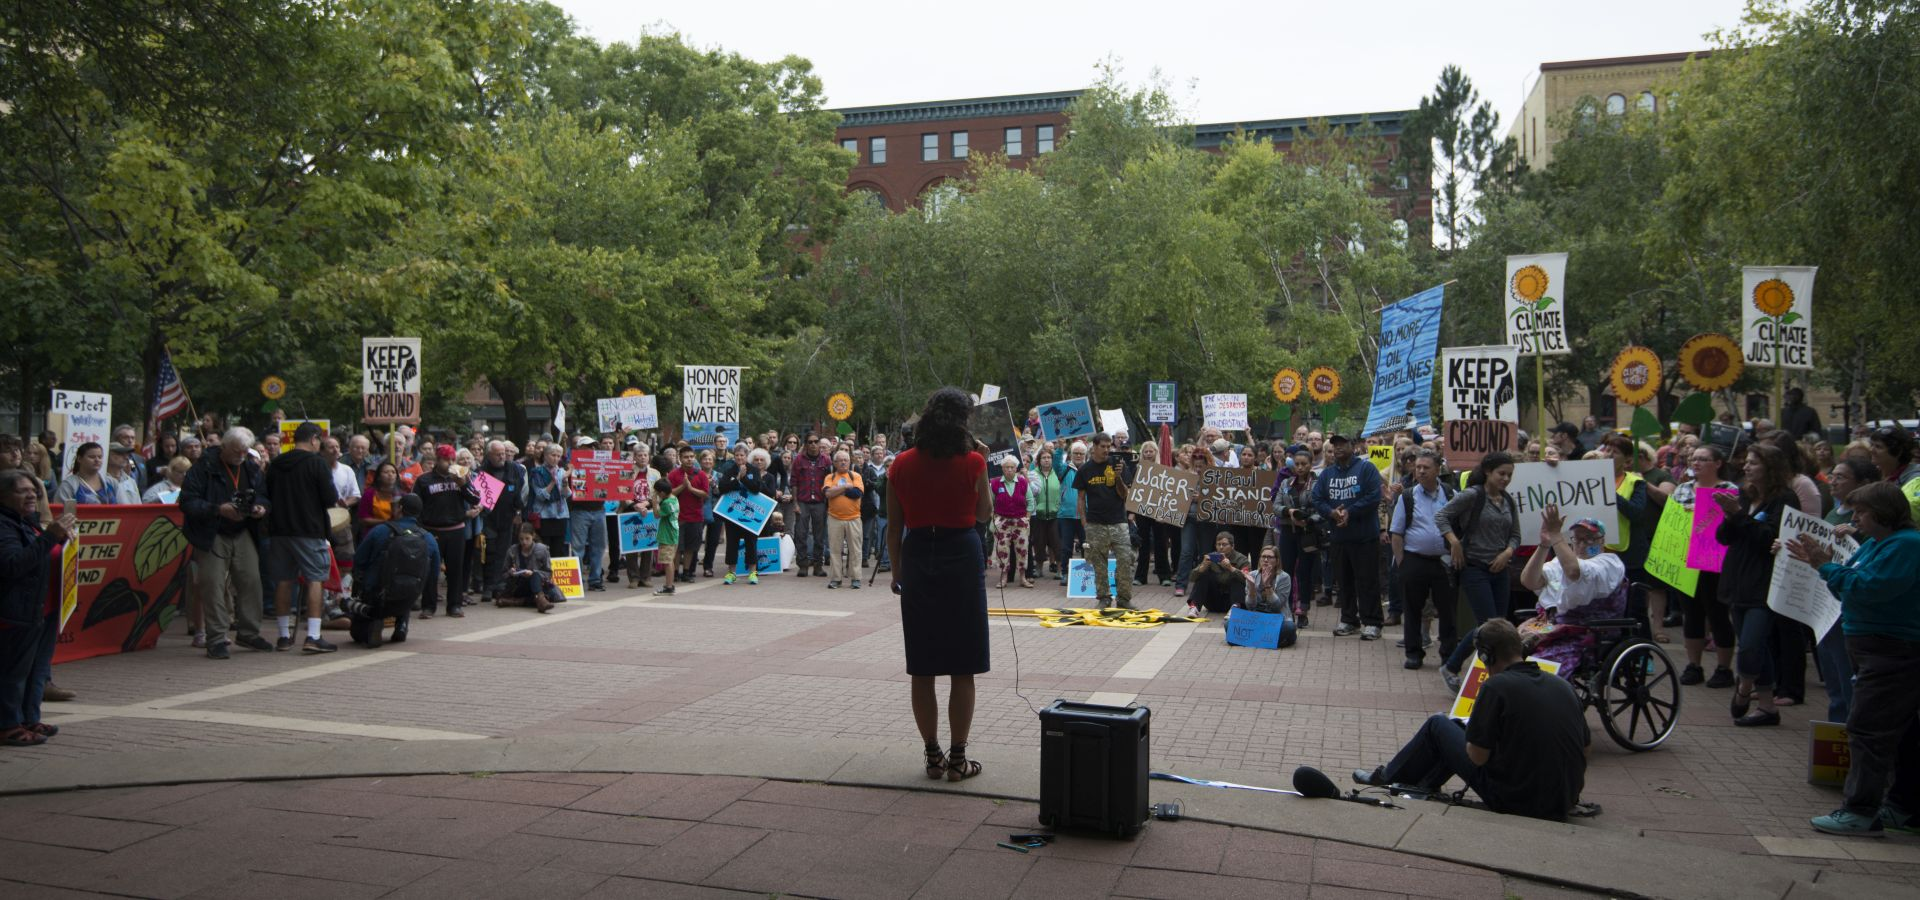 Solidarity rally with the Standing Rock in Saint Paul, against the Dakota Access Pipeline